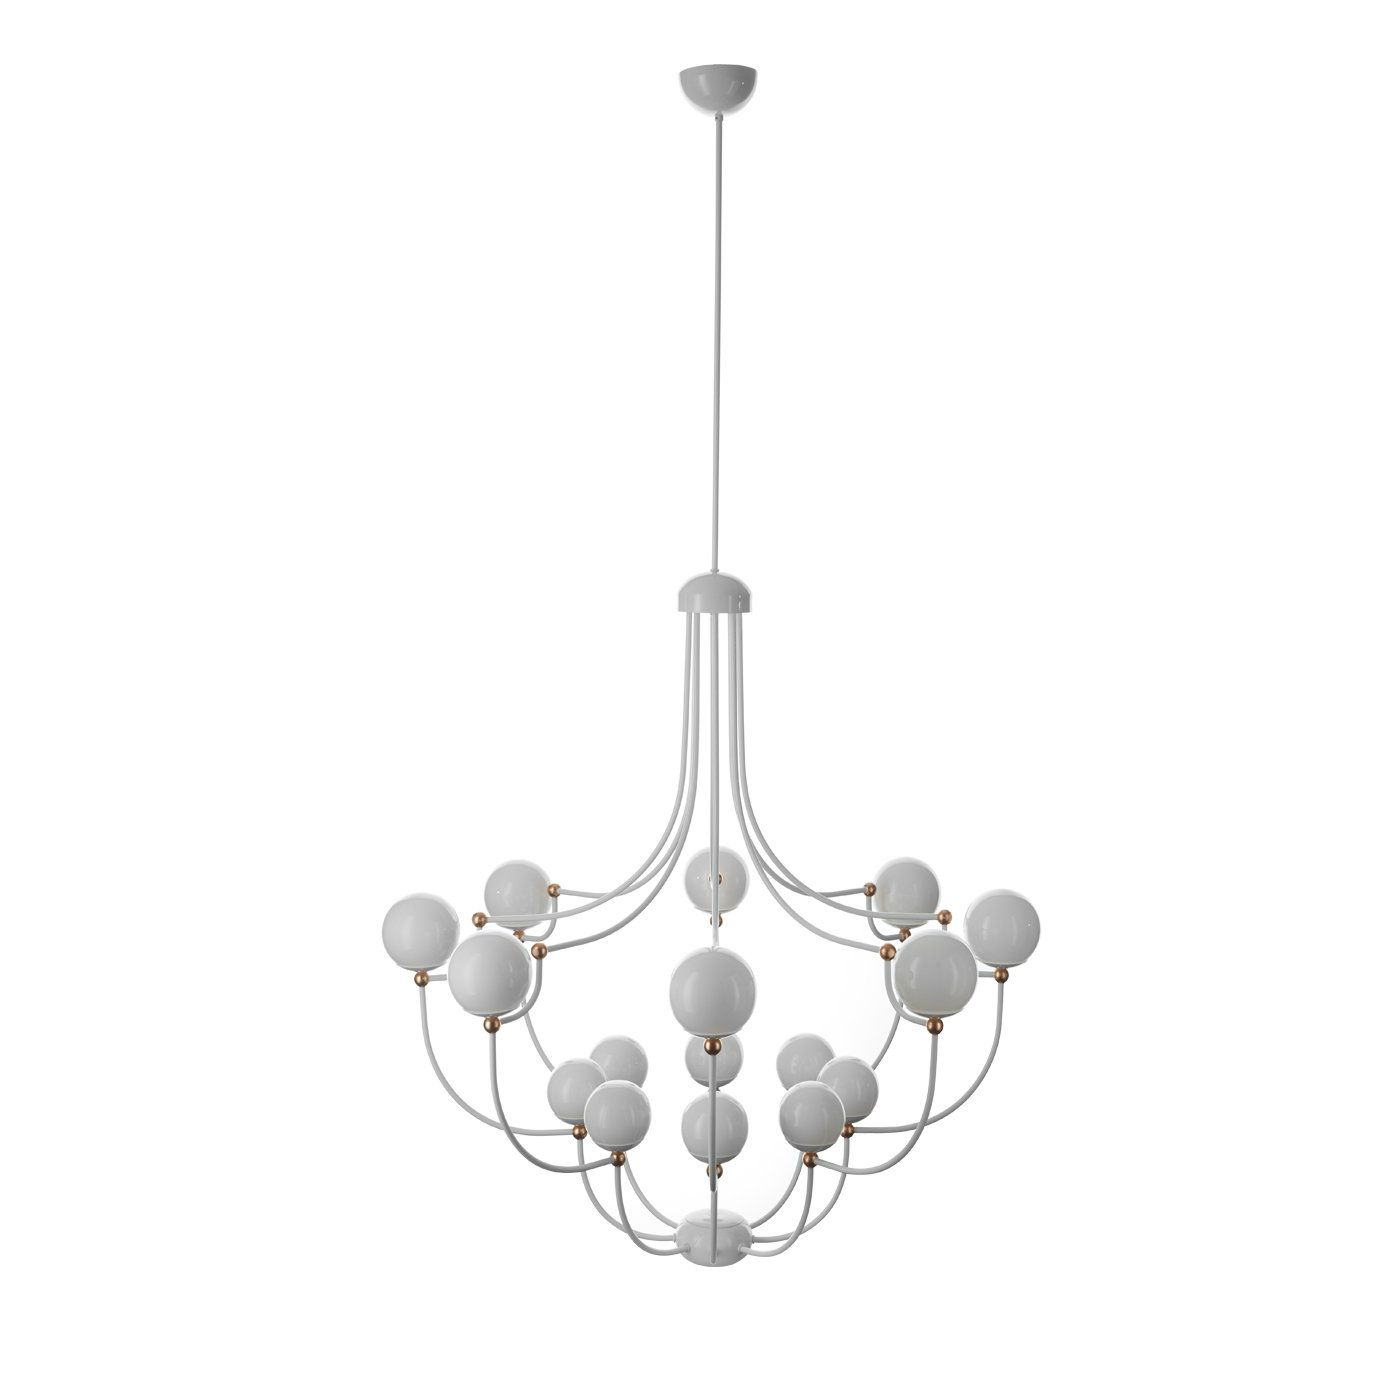 This Exquisite 16 Light Chandelier Is The Result Of The Development